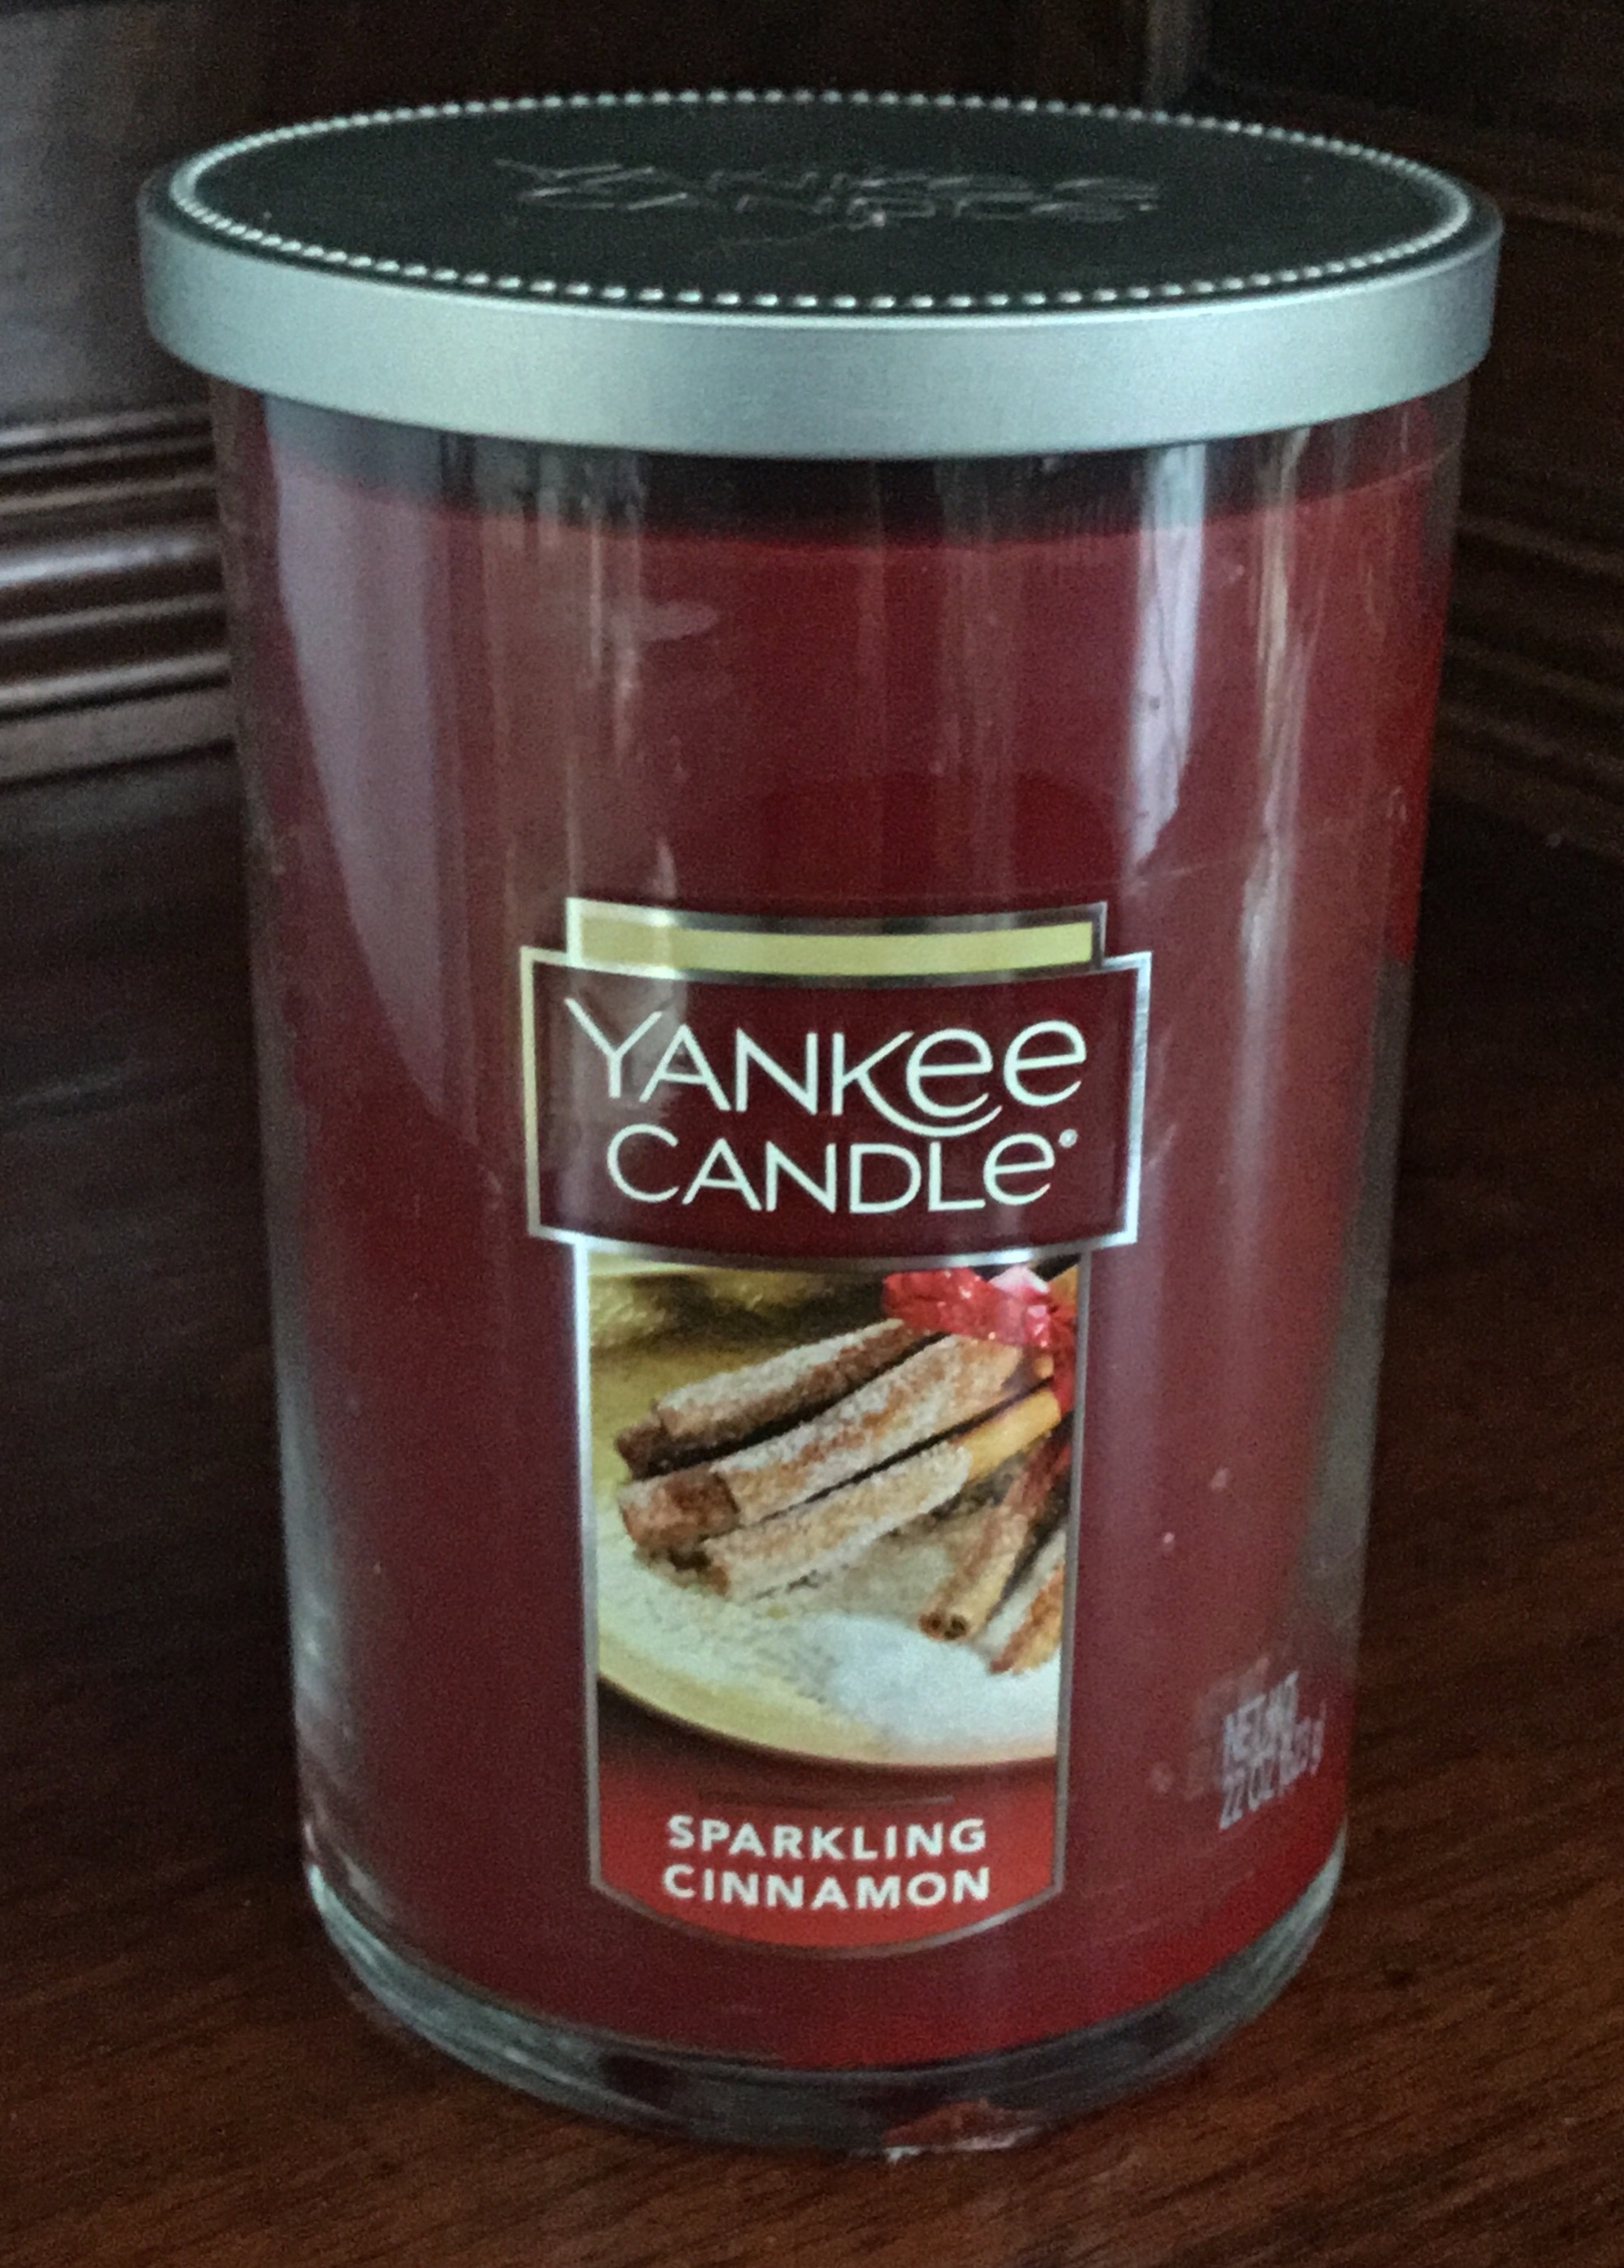 Yankee Candle, Sparkling Cinnamon Candle